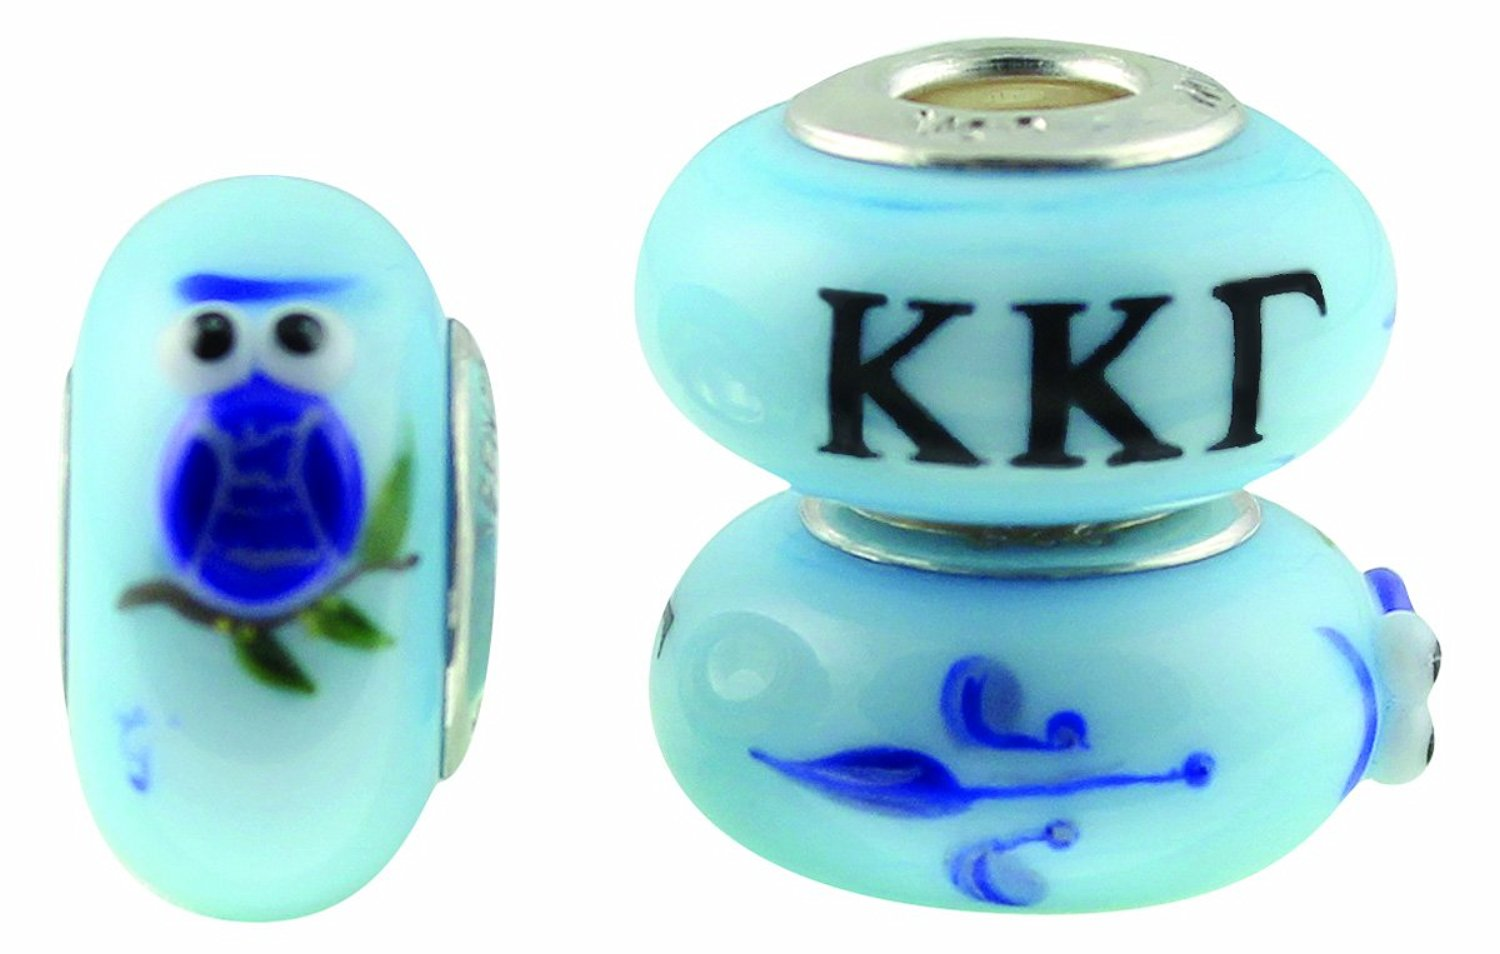 Kappa Kappa Gamma Hand Painted Fenton Glass Bead Fits Most European Style Charm Bracelets